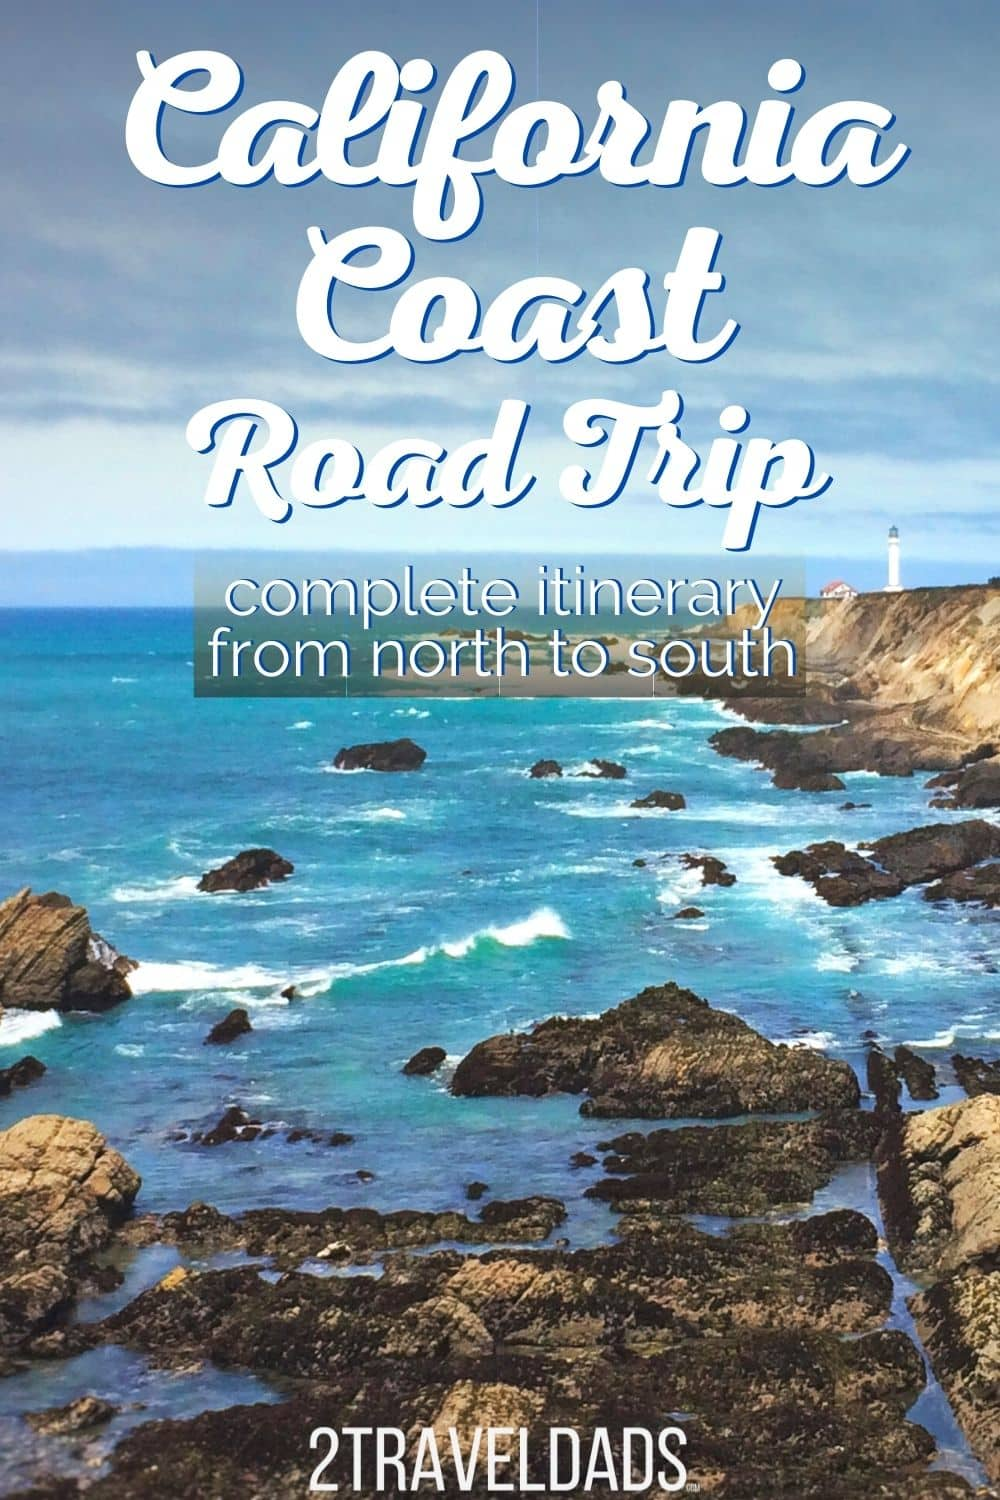 Complete California Coast road trip plan from North to South. 7 Day itinerary for the Pacific Coast Highway drive on Highway 1. Best stops on the California Coast in Big Sur, San Francisco, the Redwoods and more.